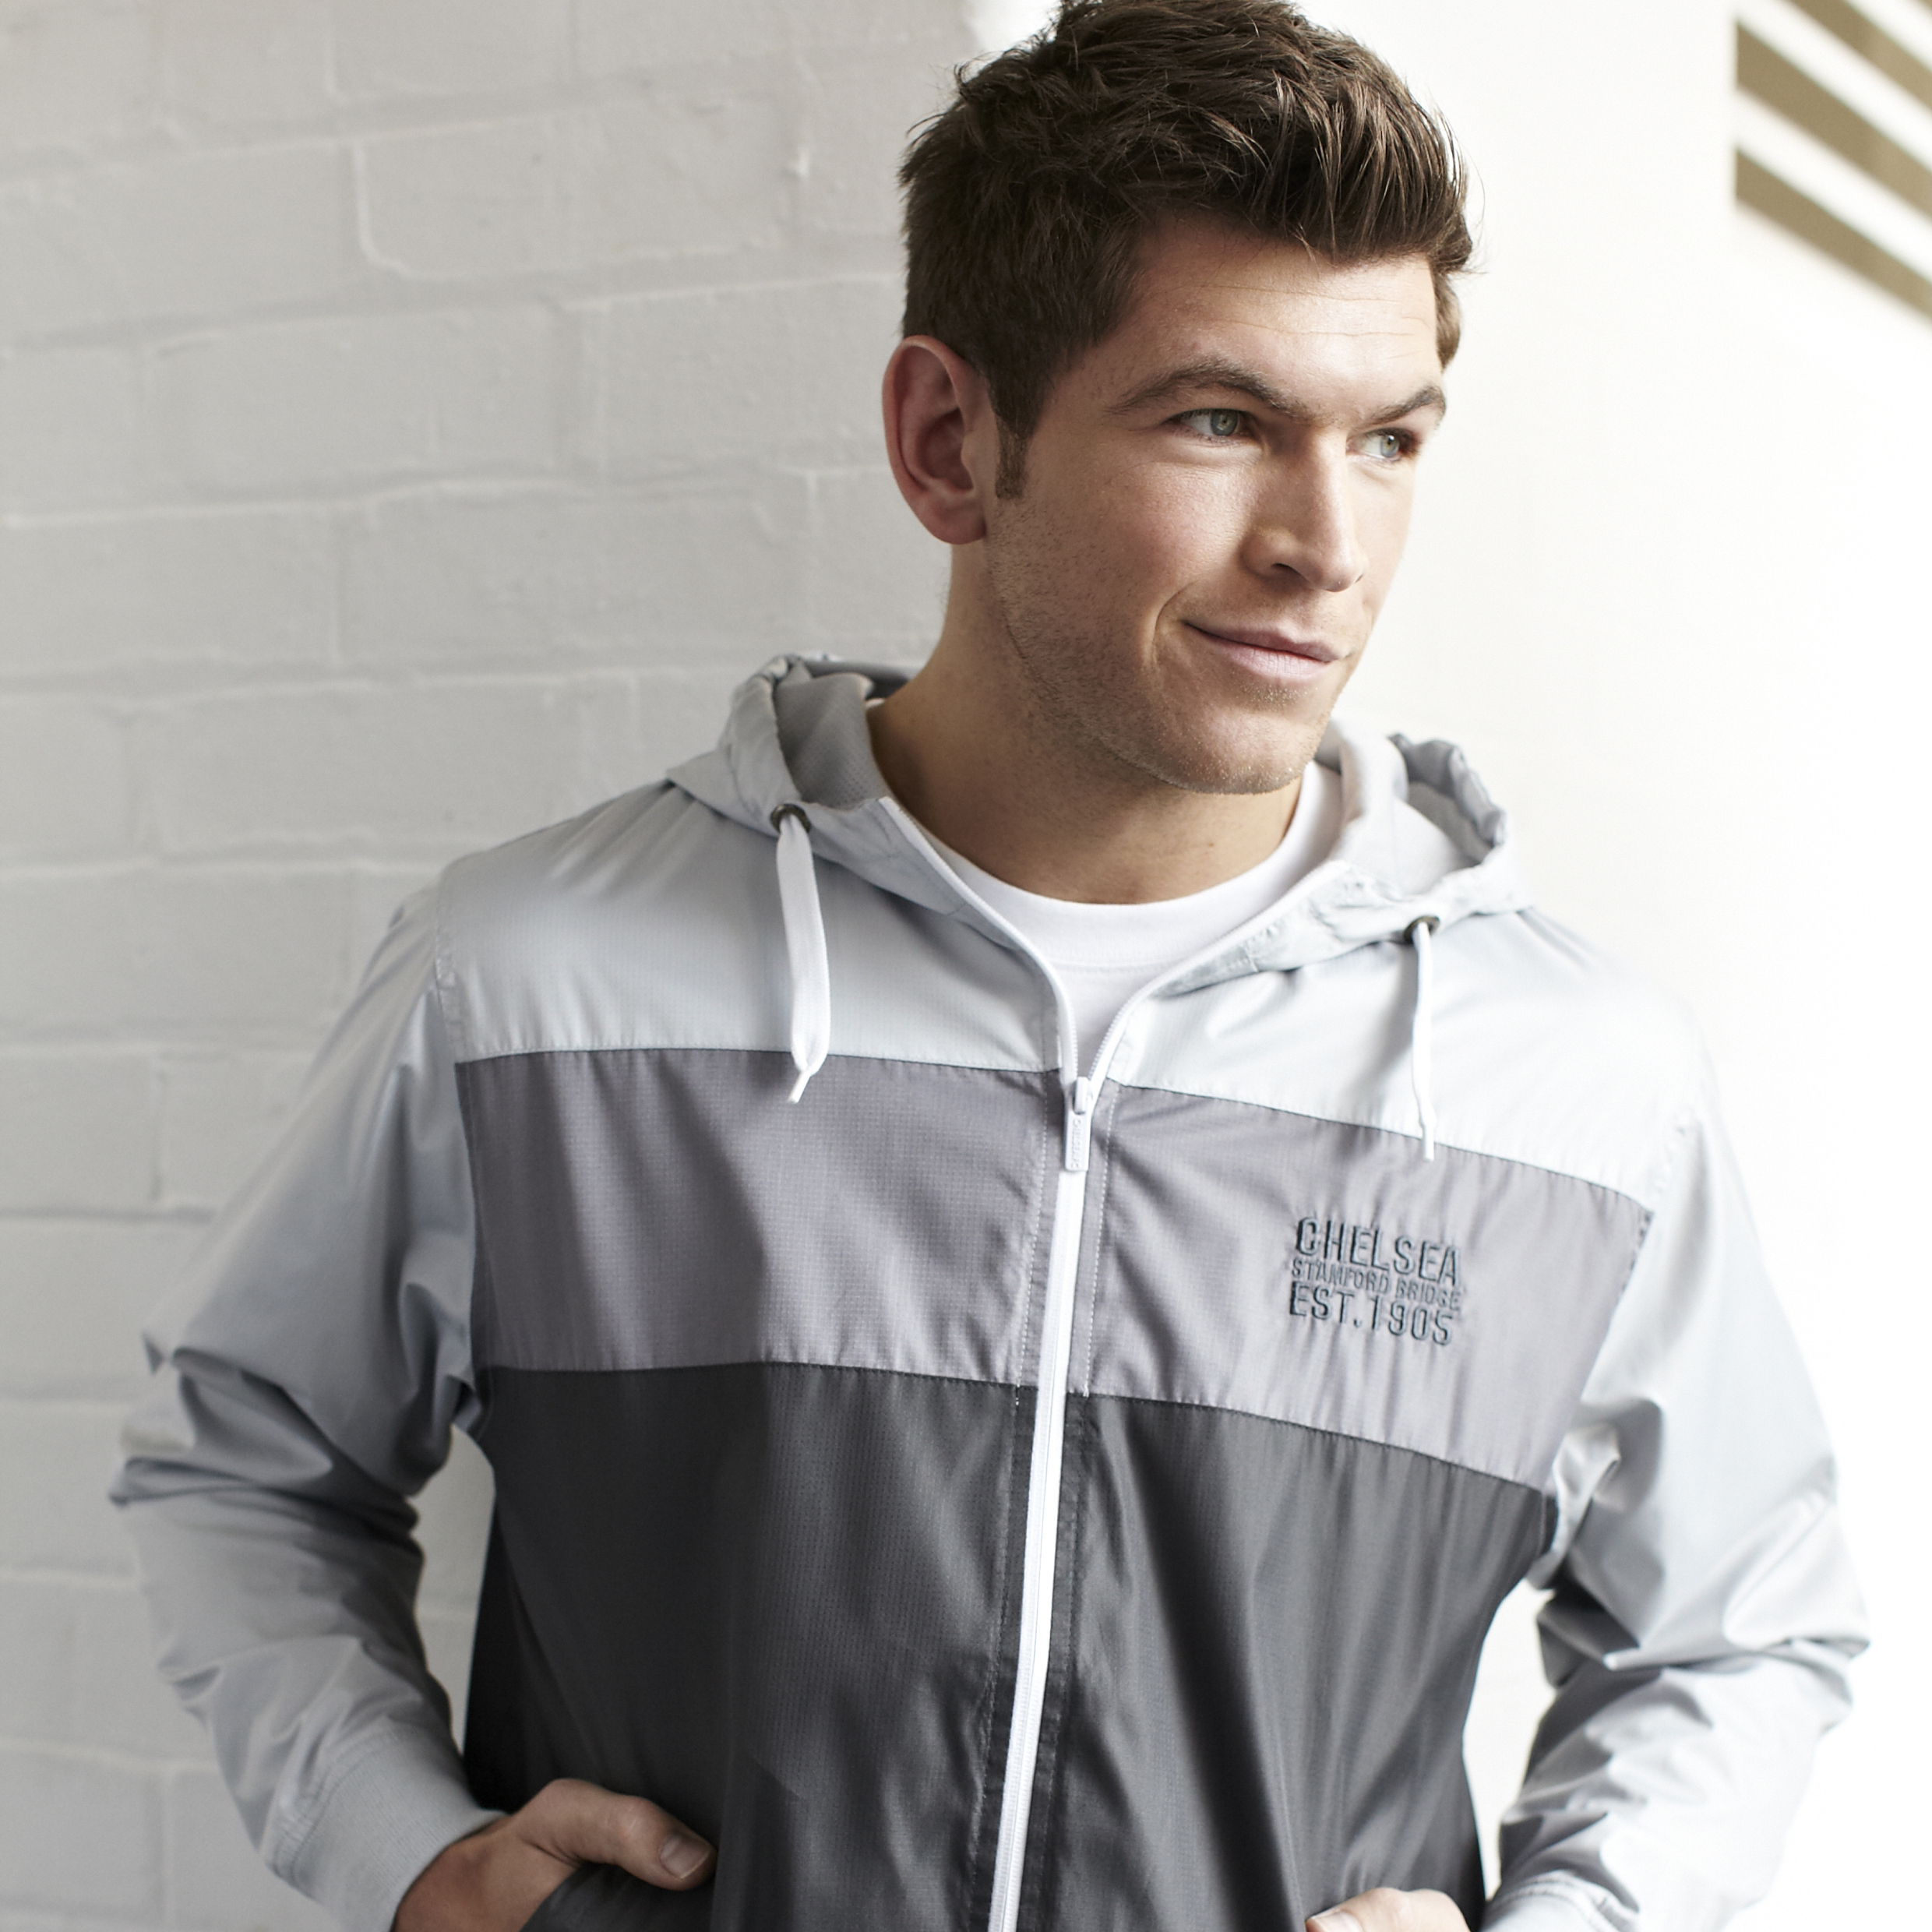 Chelsea Classic Panelled Shower Jacket - Carbon - Mens